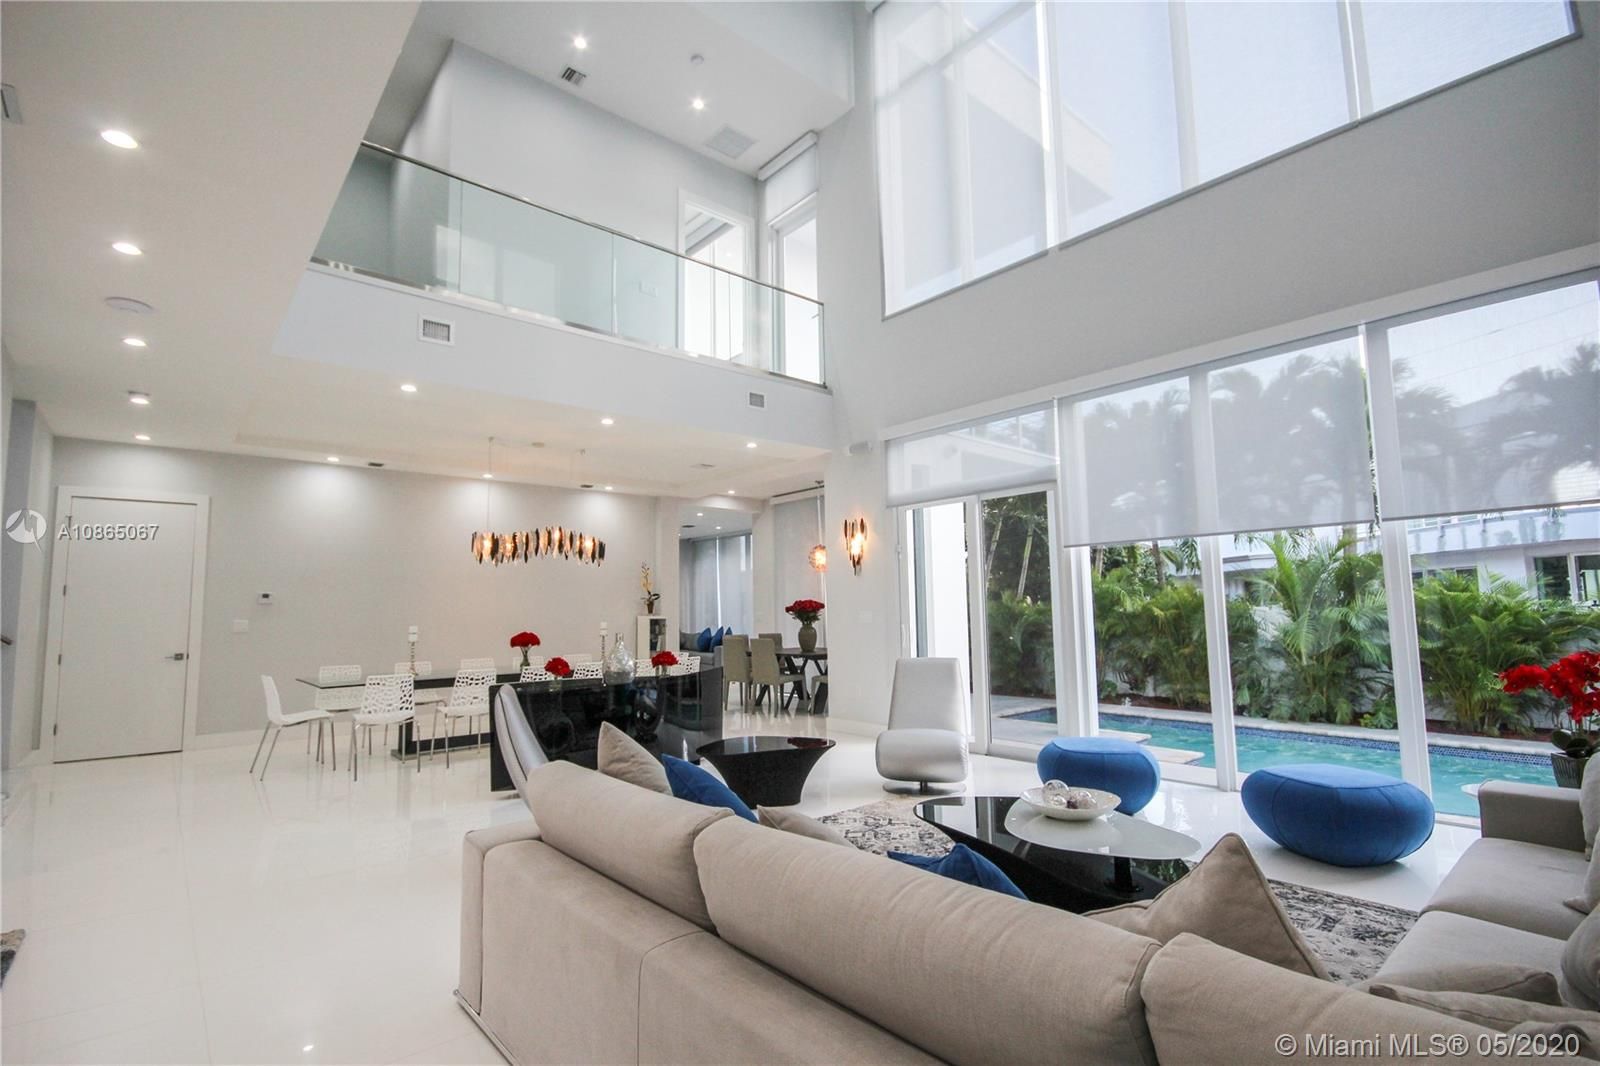 Floor to ceiling windows providing natural light throughout.